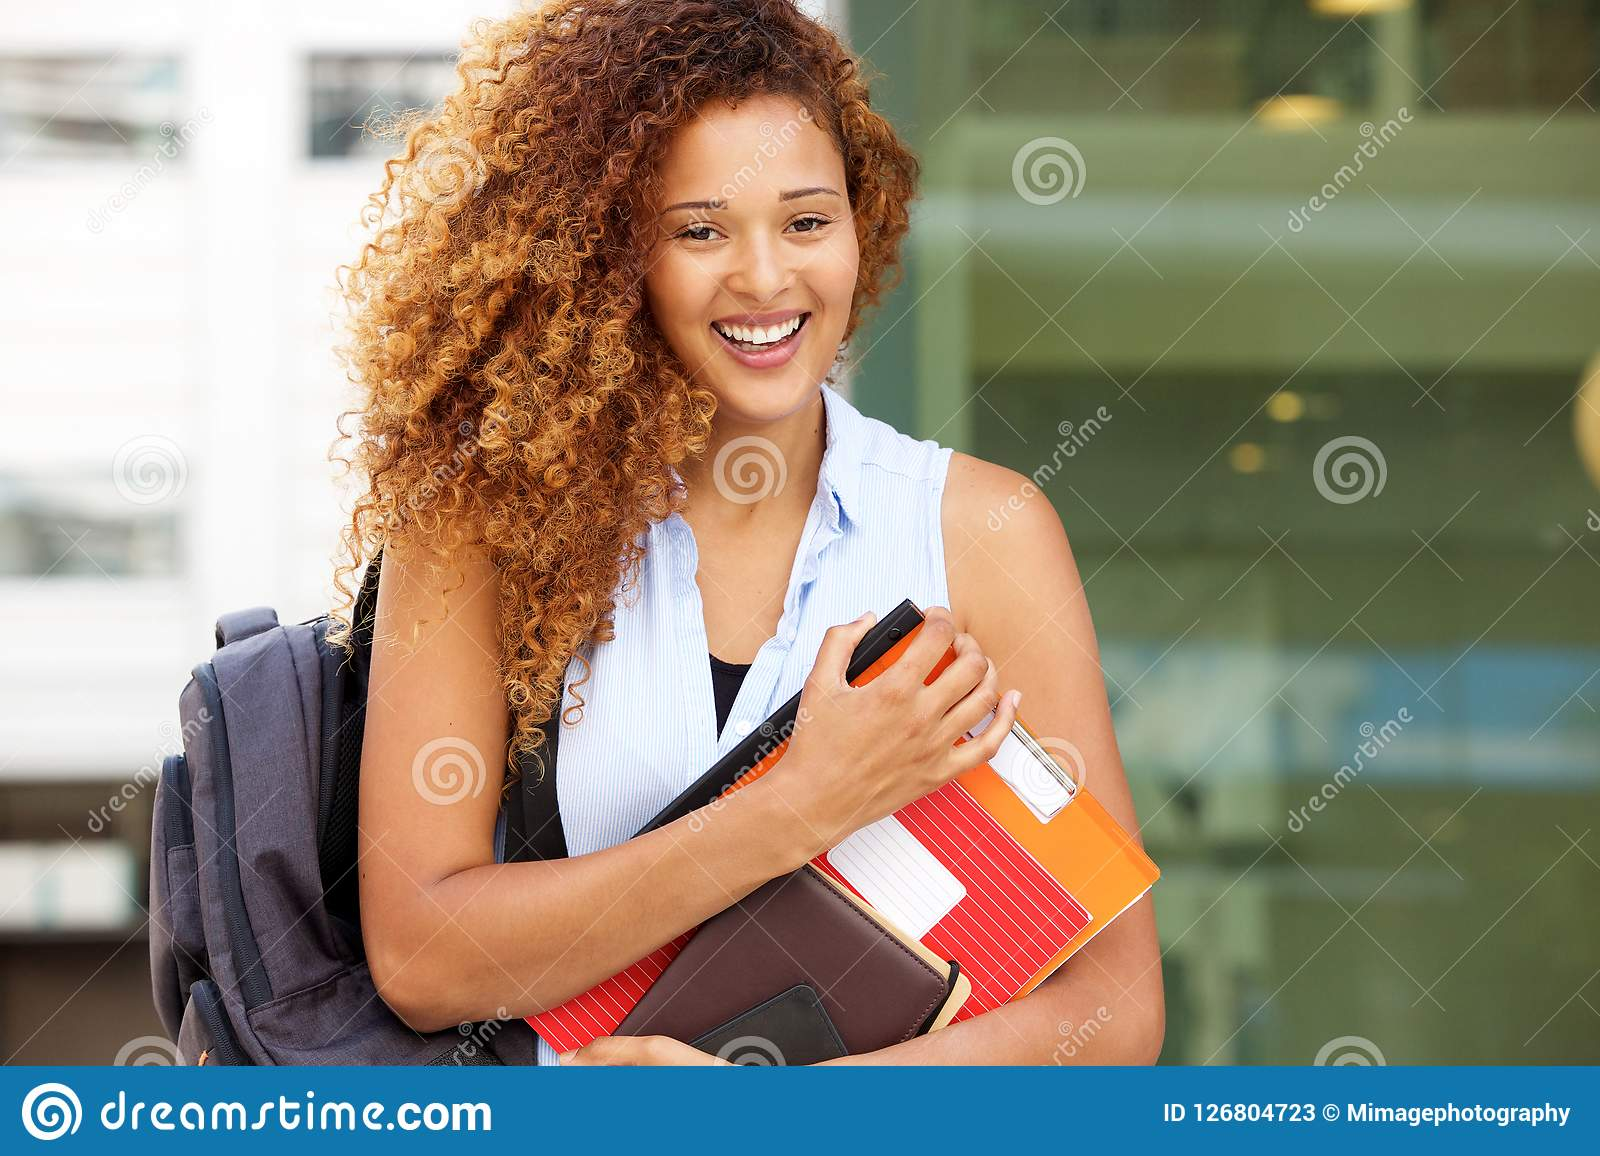 Happy female student smiling with bag and books on campus